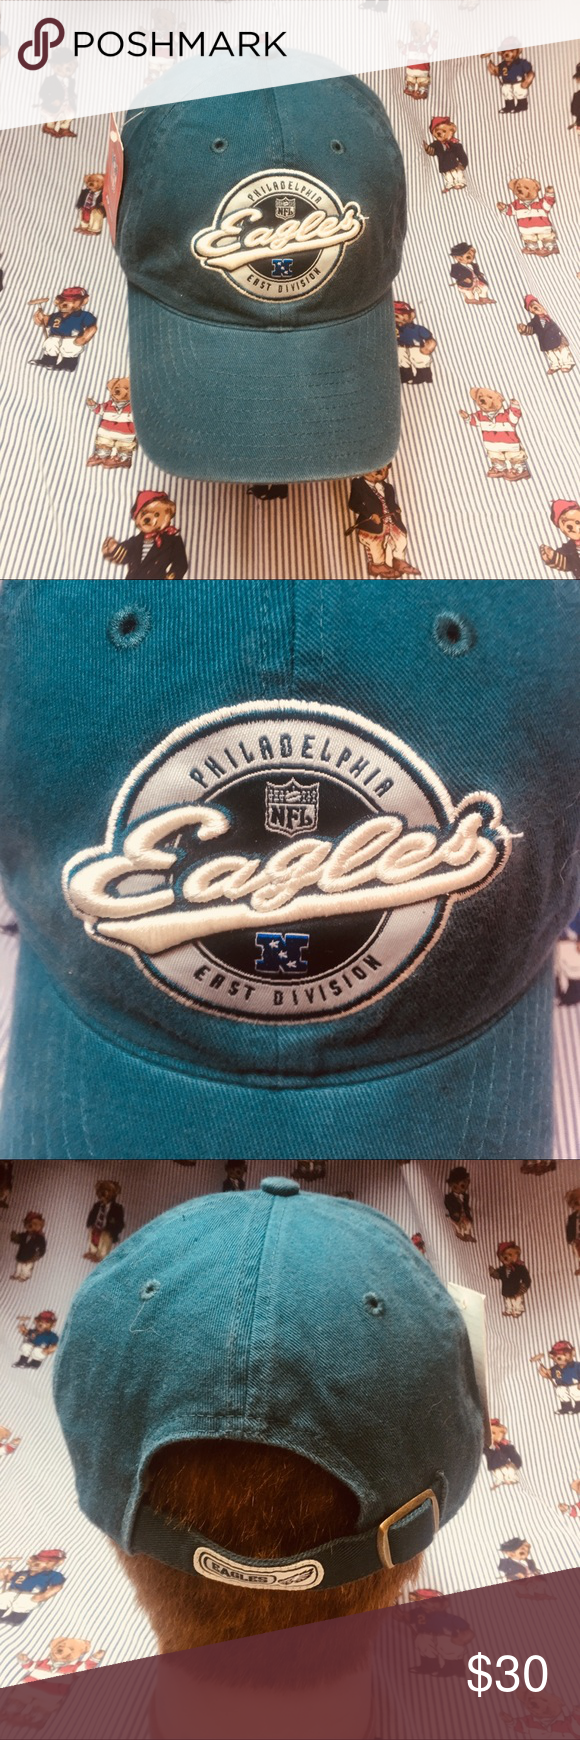 8be2ae6f1ba NWT Vintage Reebok Philadelphia Eagles Dad Hat New With Tags Philadelphia  Eagles Green Reebok Strapback Dad Hat. All logos are embroidered on this hat .